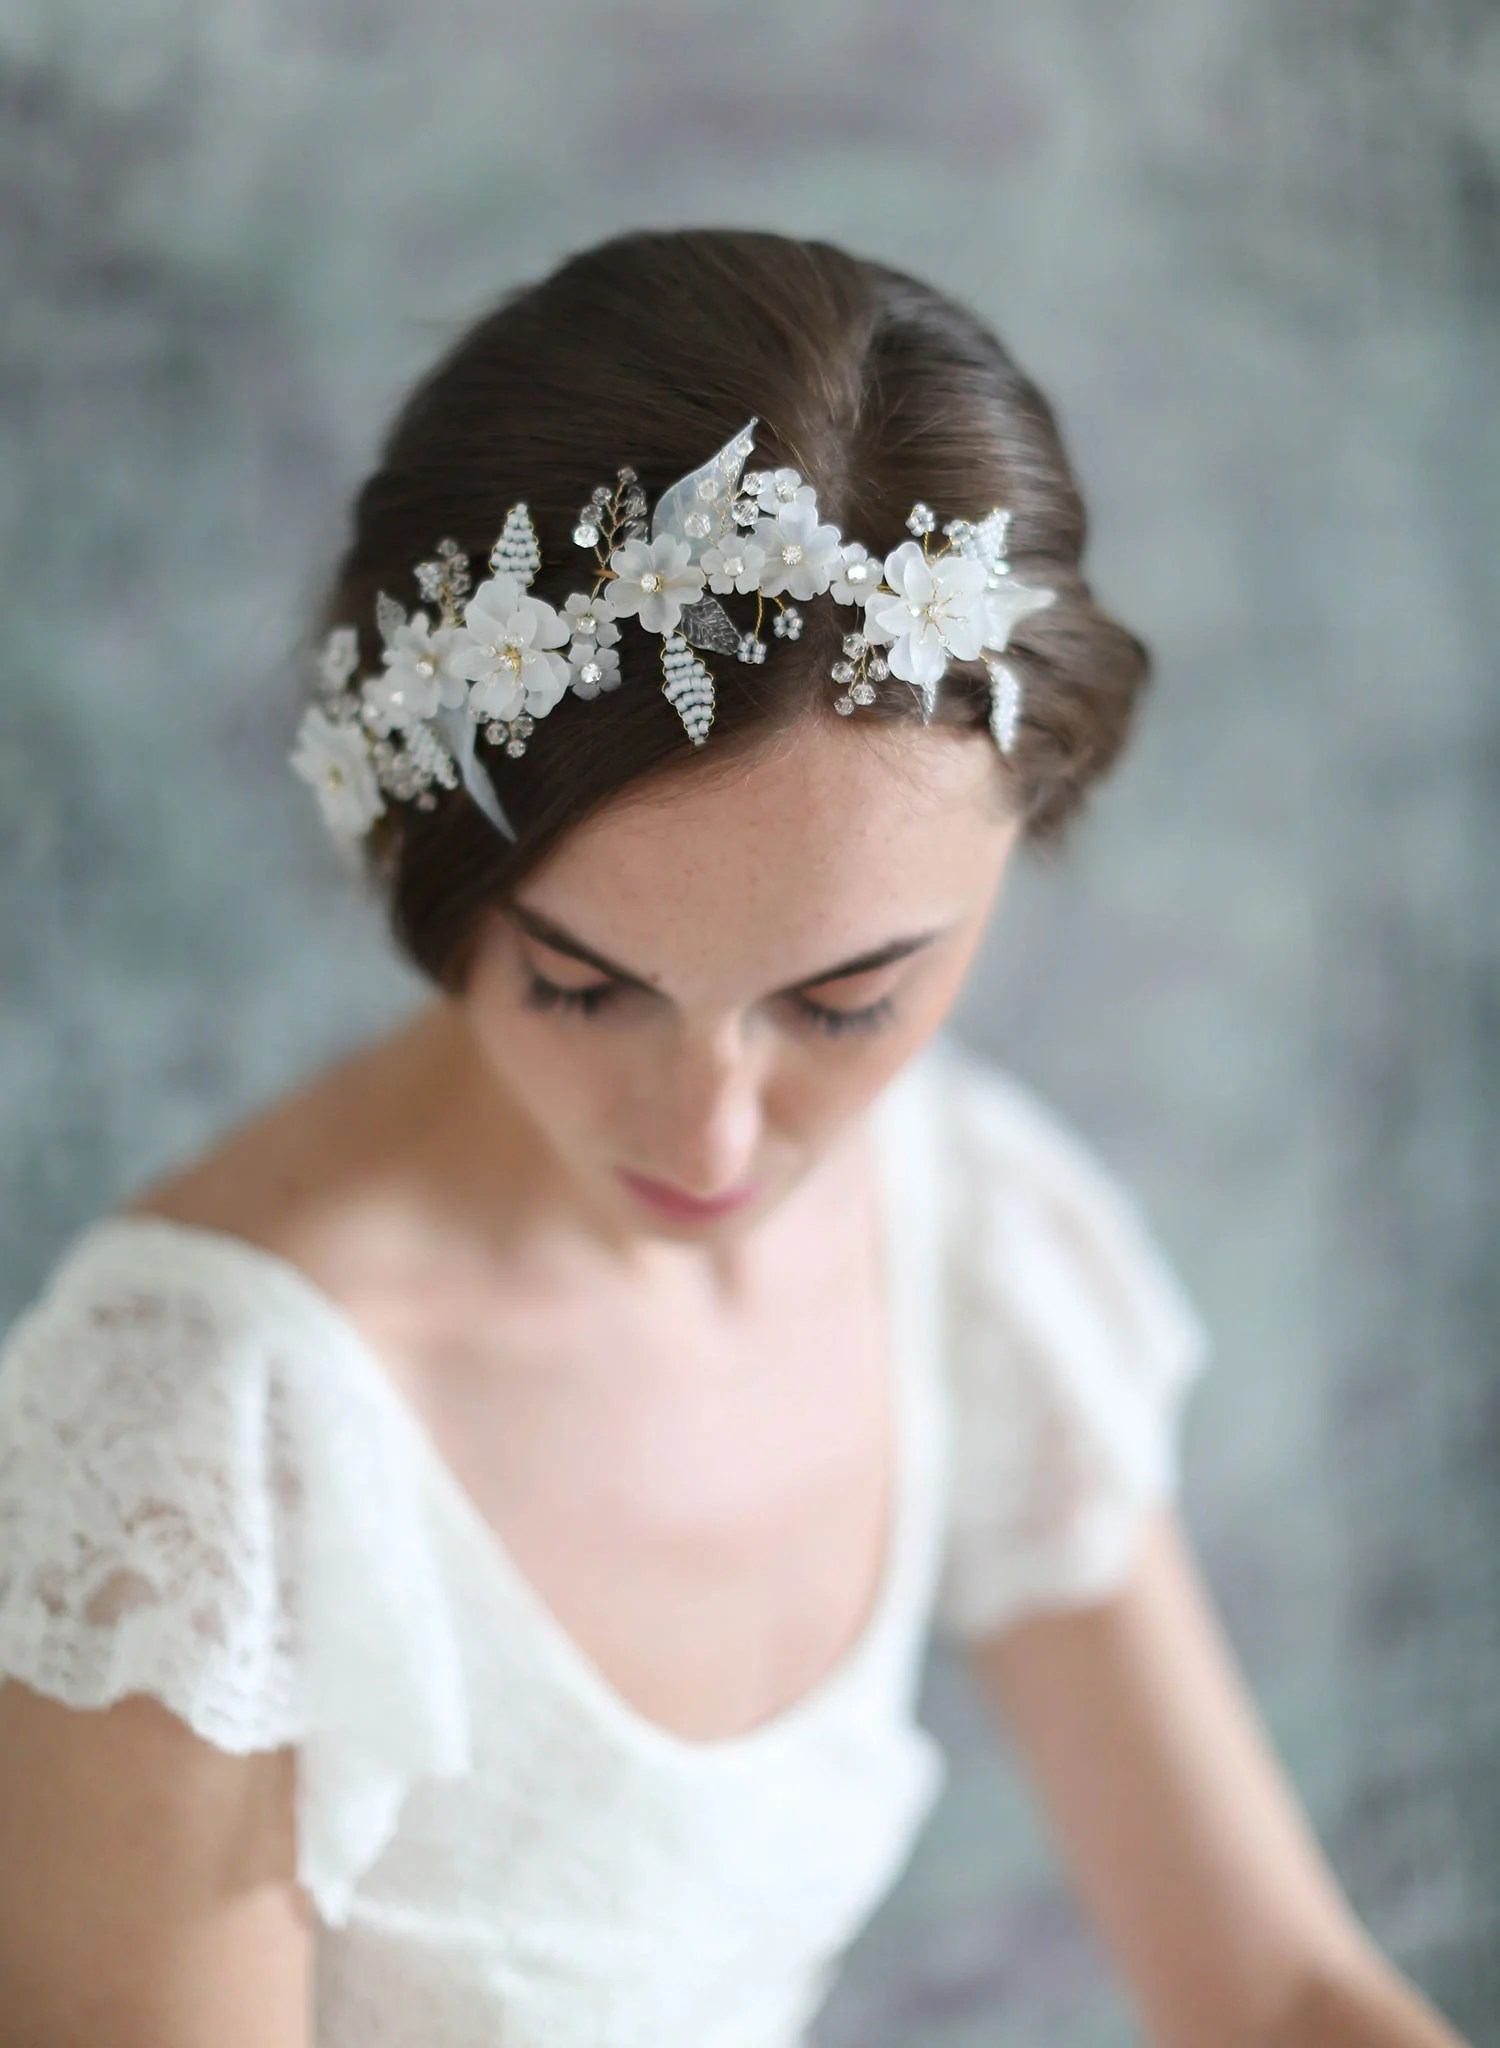 lightness and frost floral headpiece style wedding headpiece frosted floral bridal headpiece wedding headpiece bridal hair adornment twigs and honey